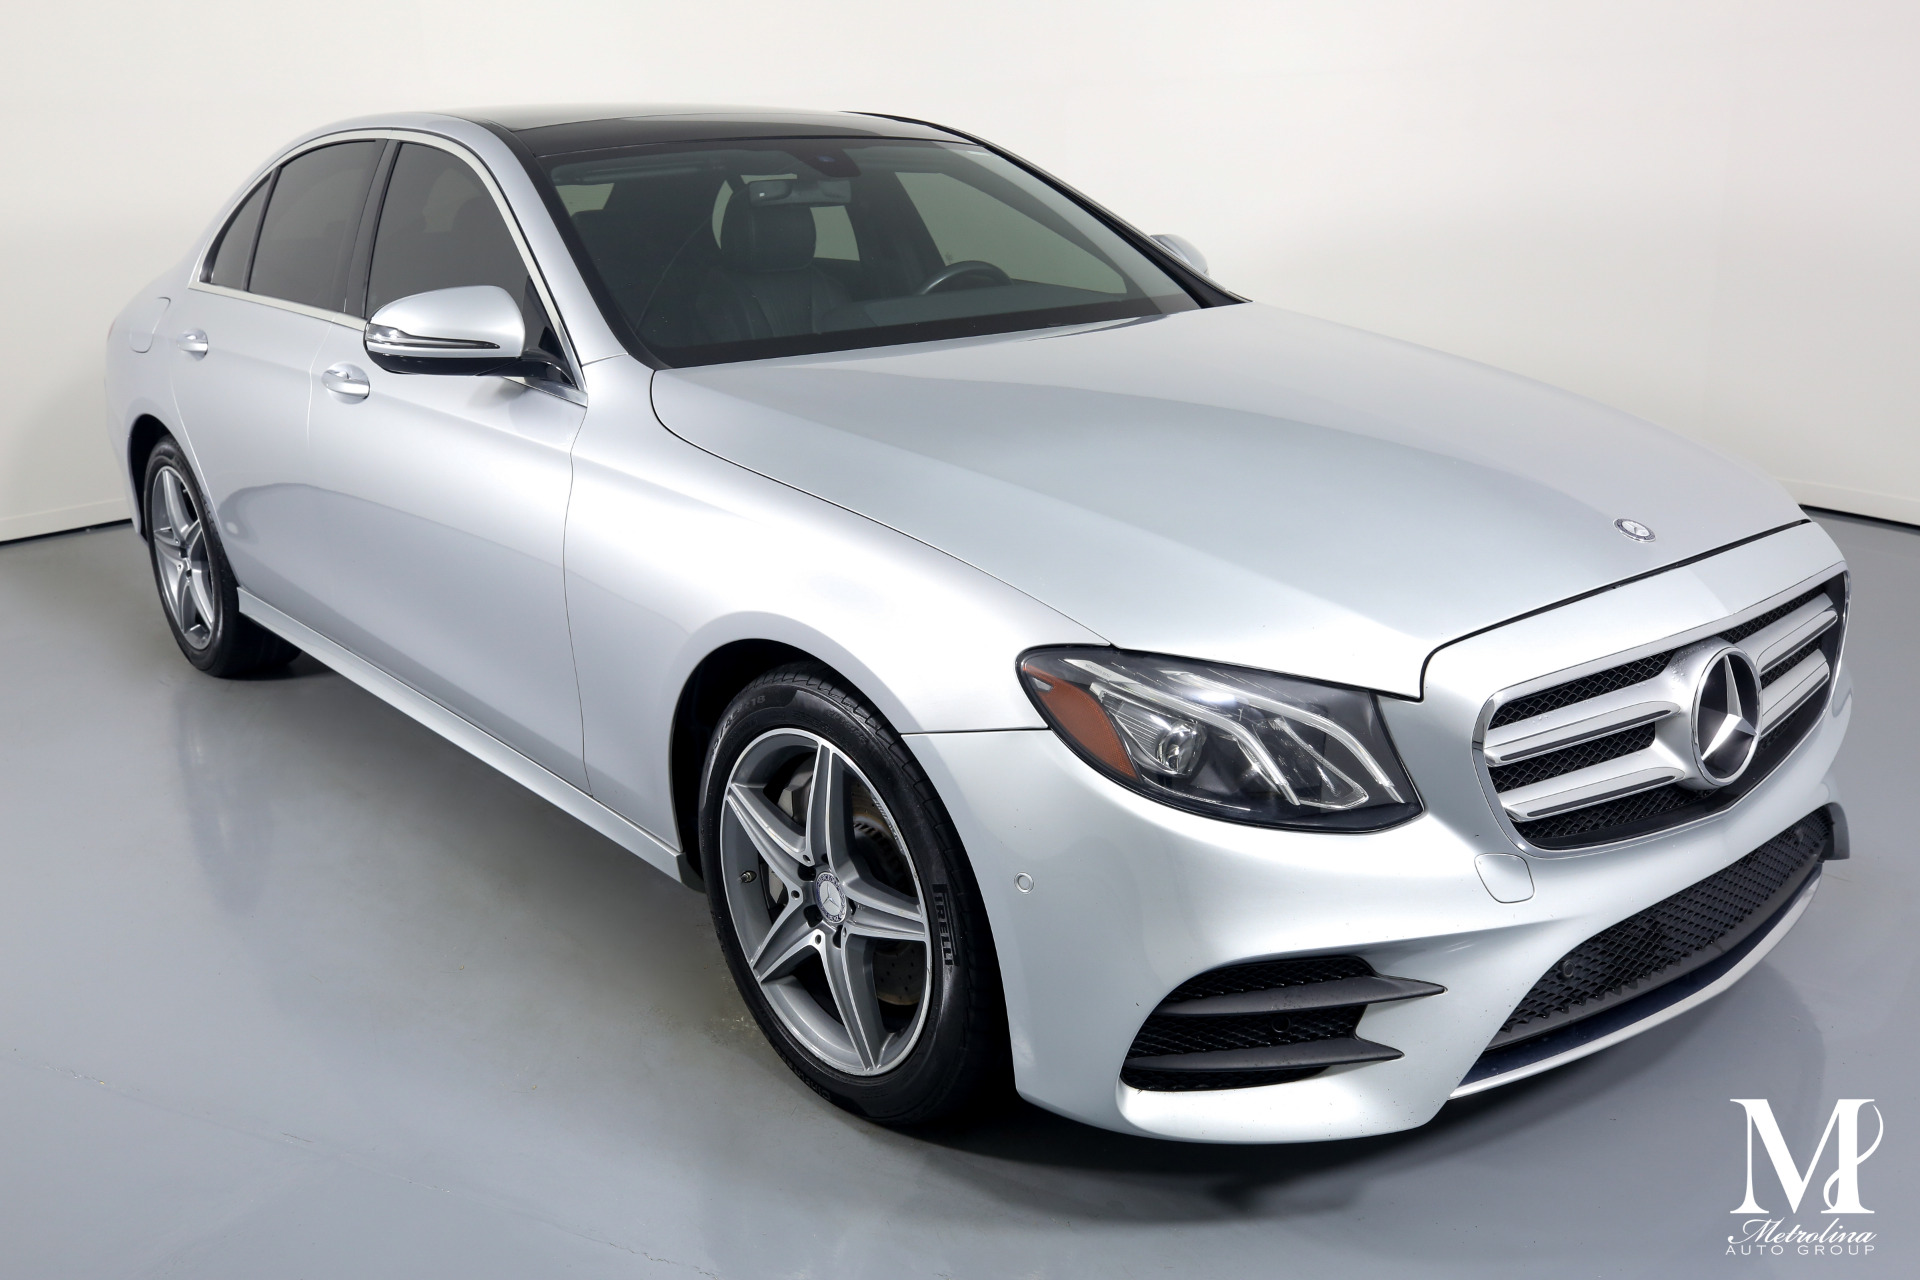 Used 2017 Mercedes-Benz E-Class E 300 4MATIC for sale $31,996 at Metrolina Auto Group in Charlotte NC 28217 - 2